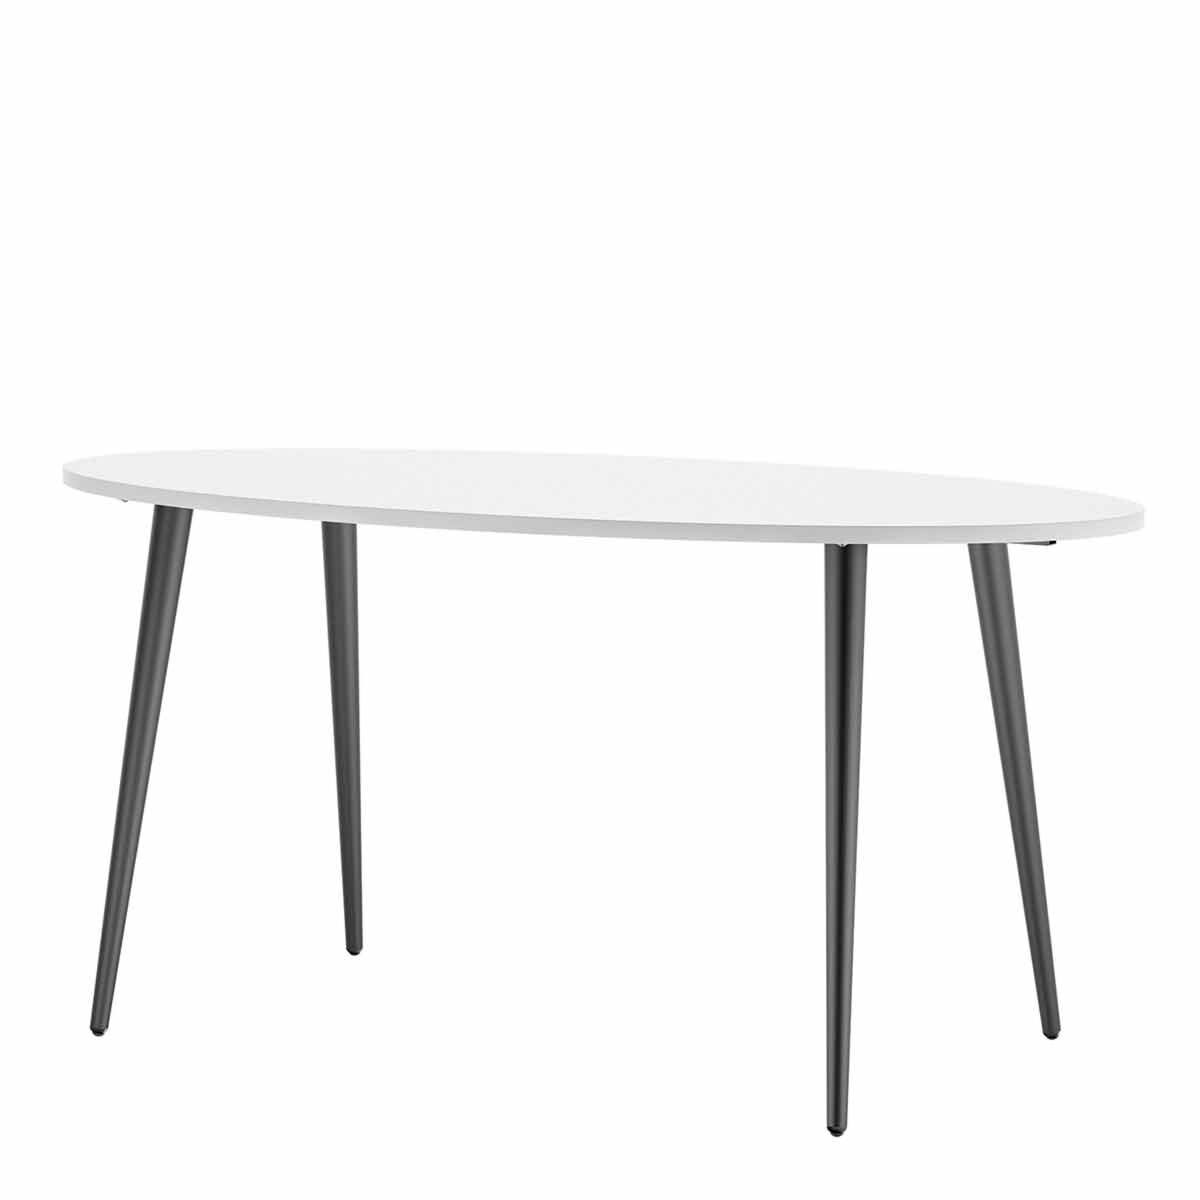 Oslo Oval Dining Table Black and White 160cm